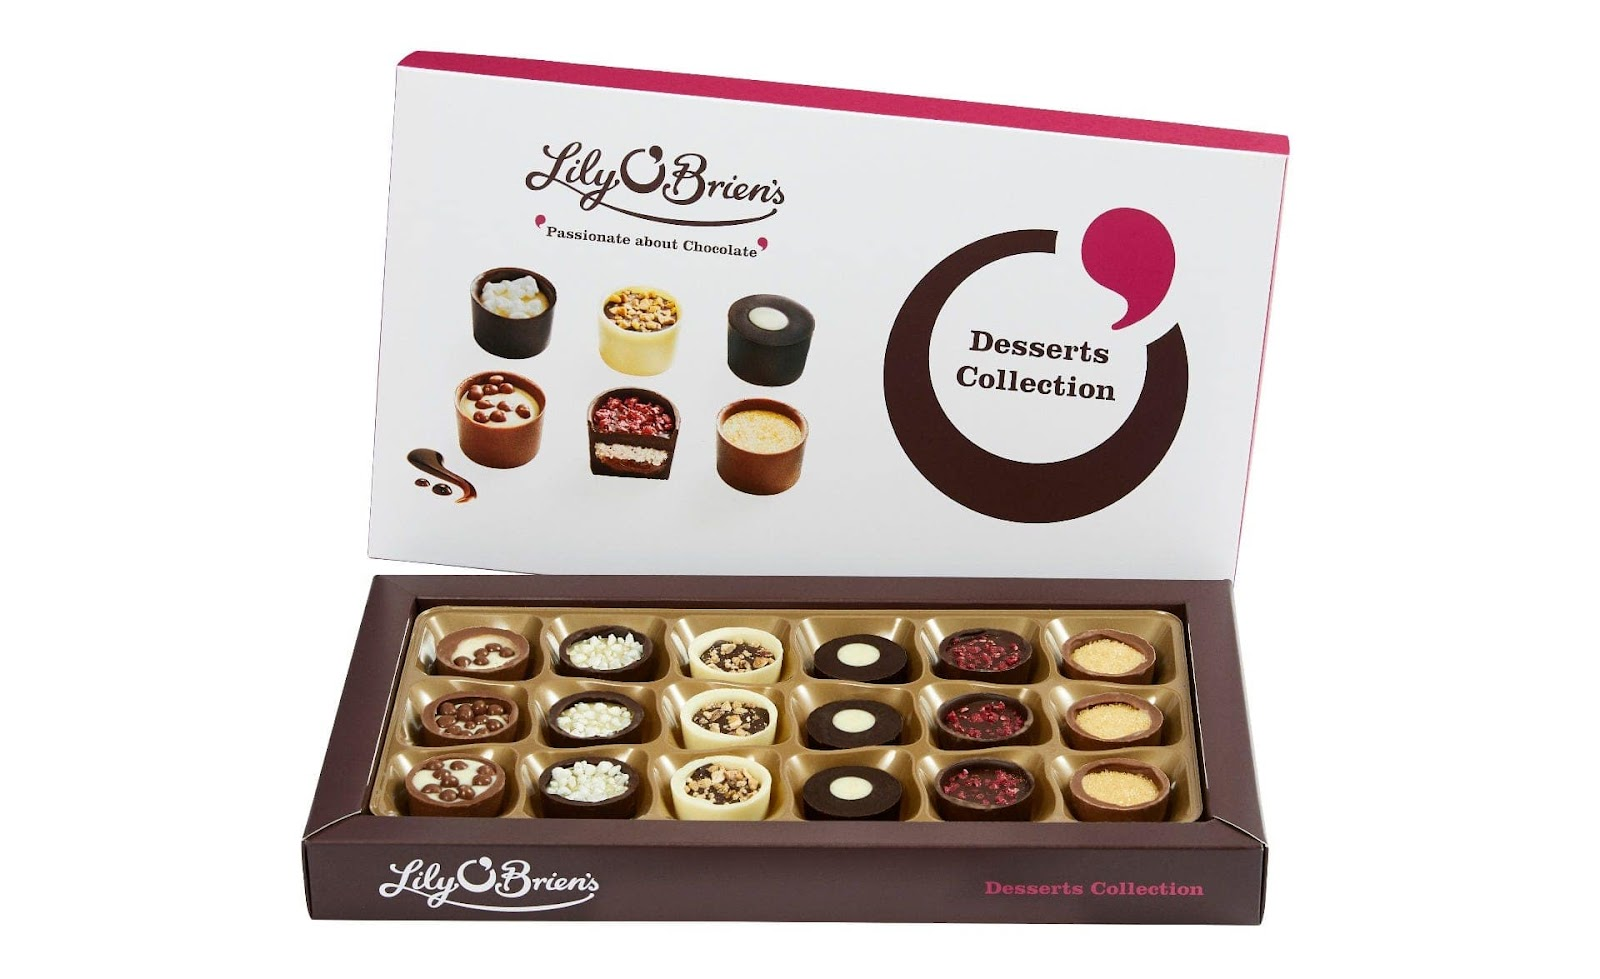 Clintons Lily O'Briens Dessert Collection Box